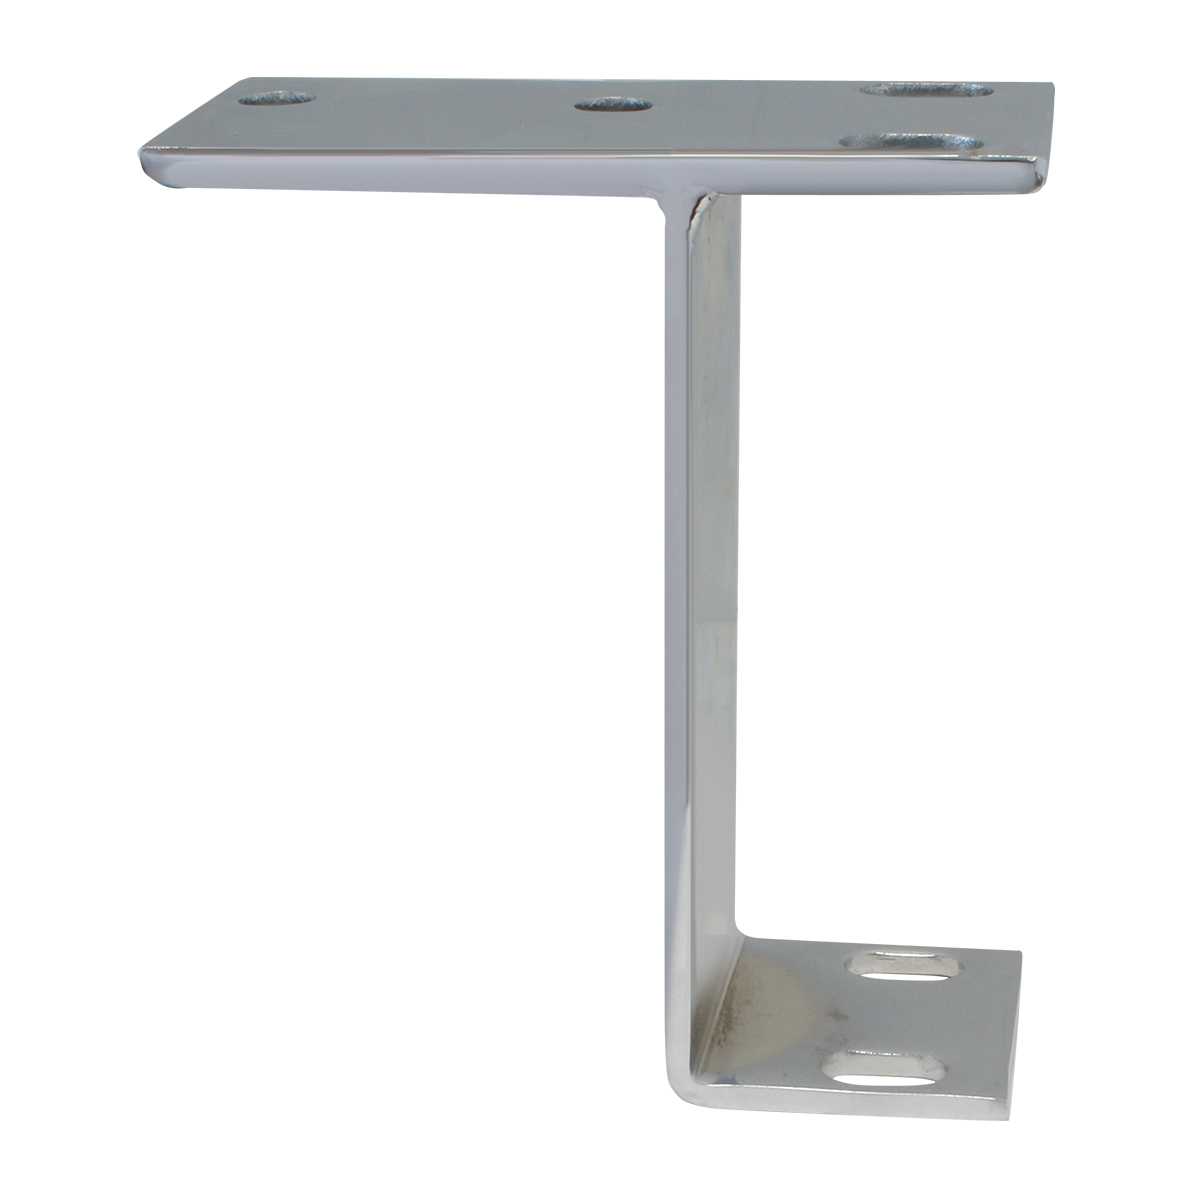 #80141 Chrome Plated Steel Mounting Bracket